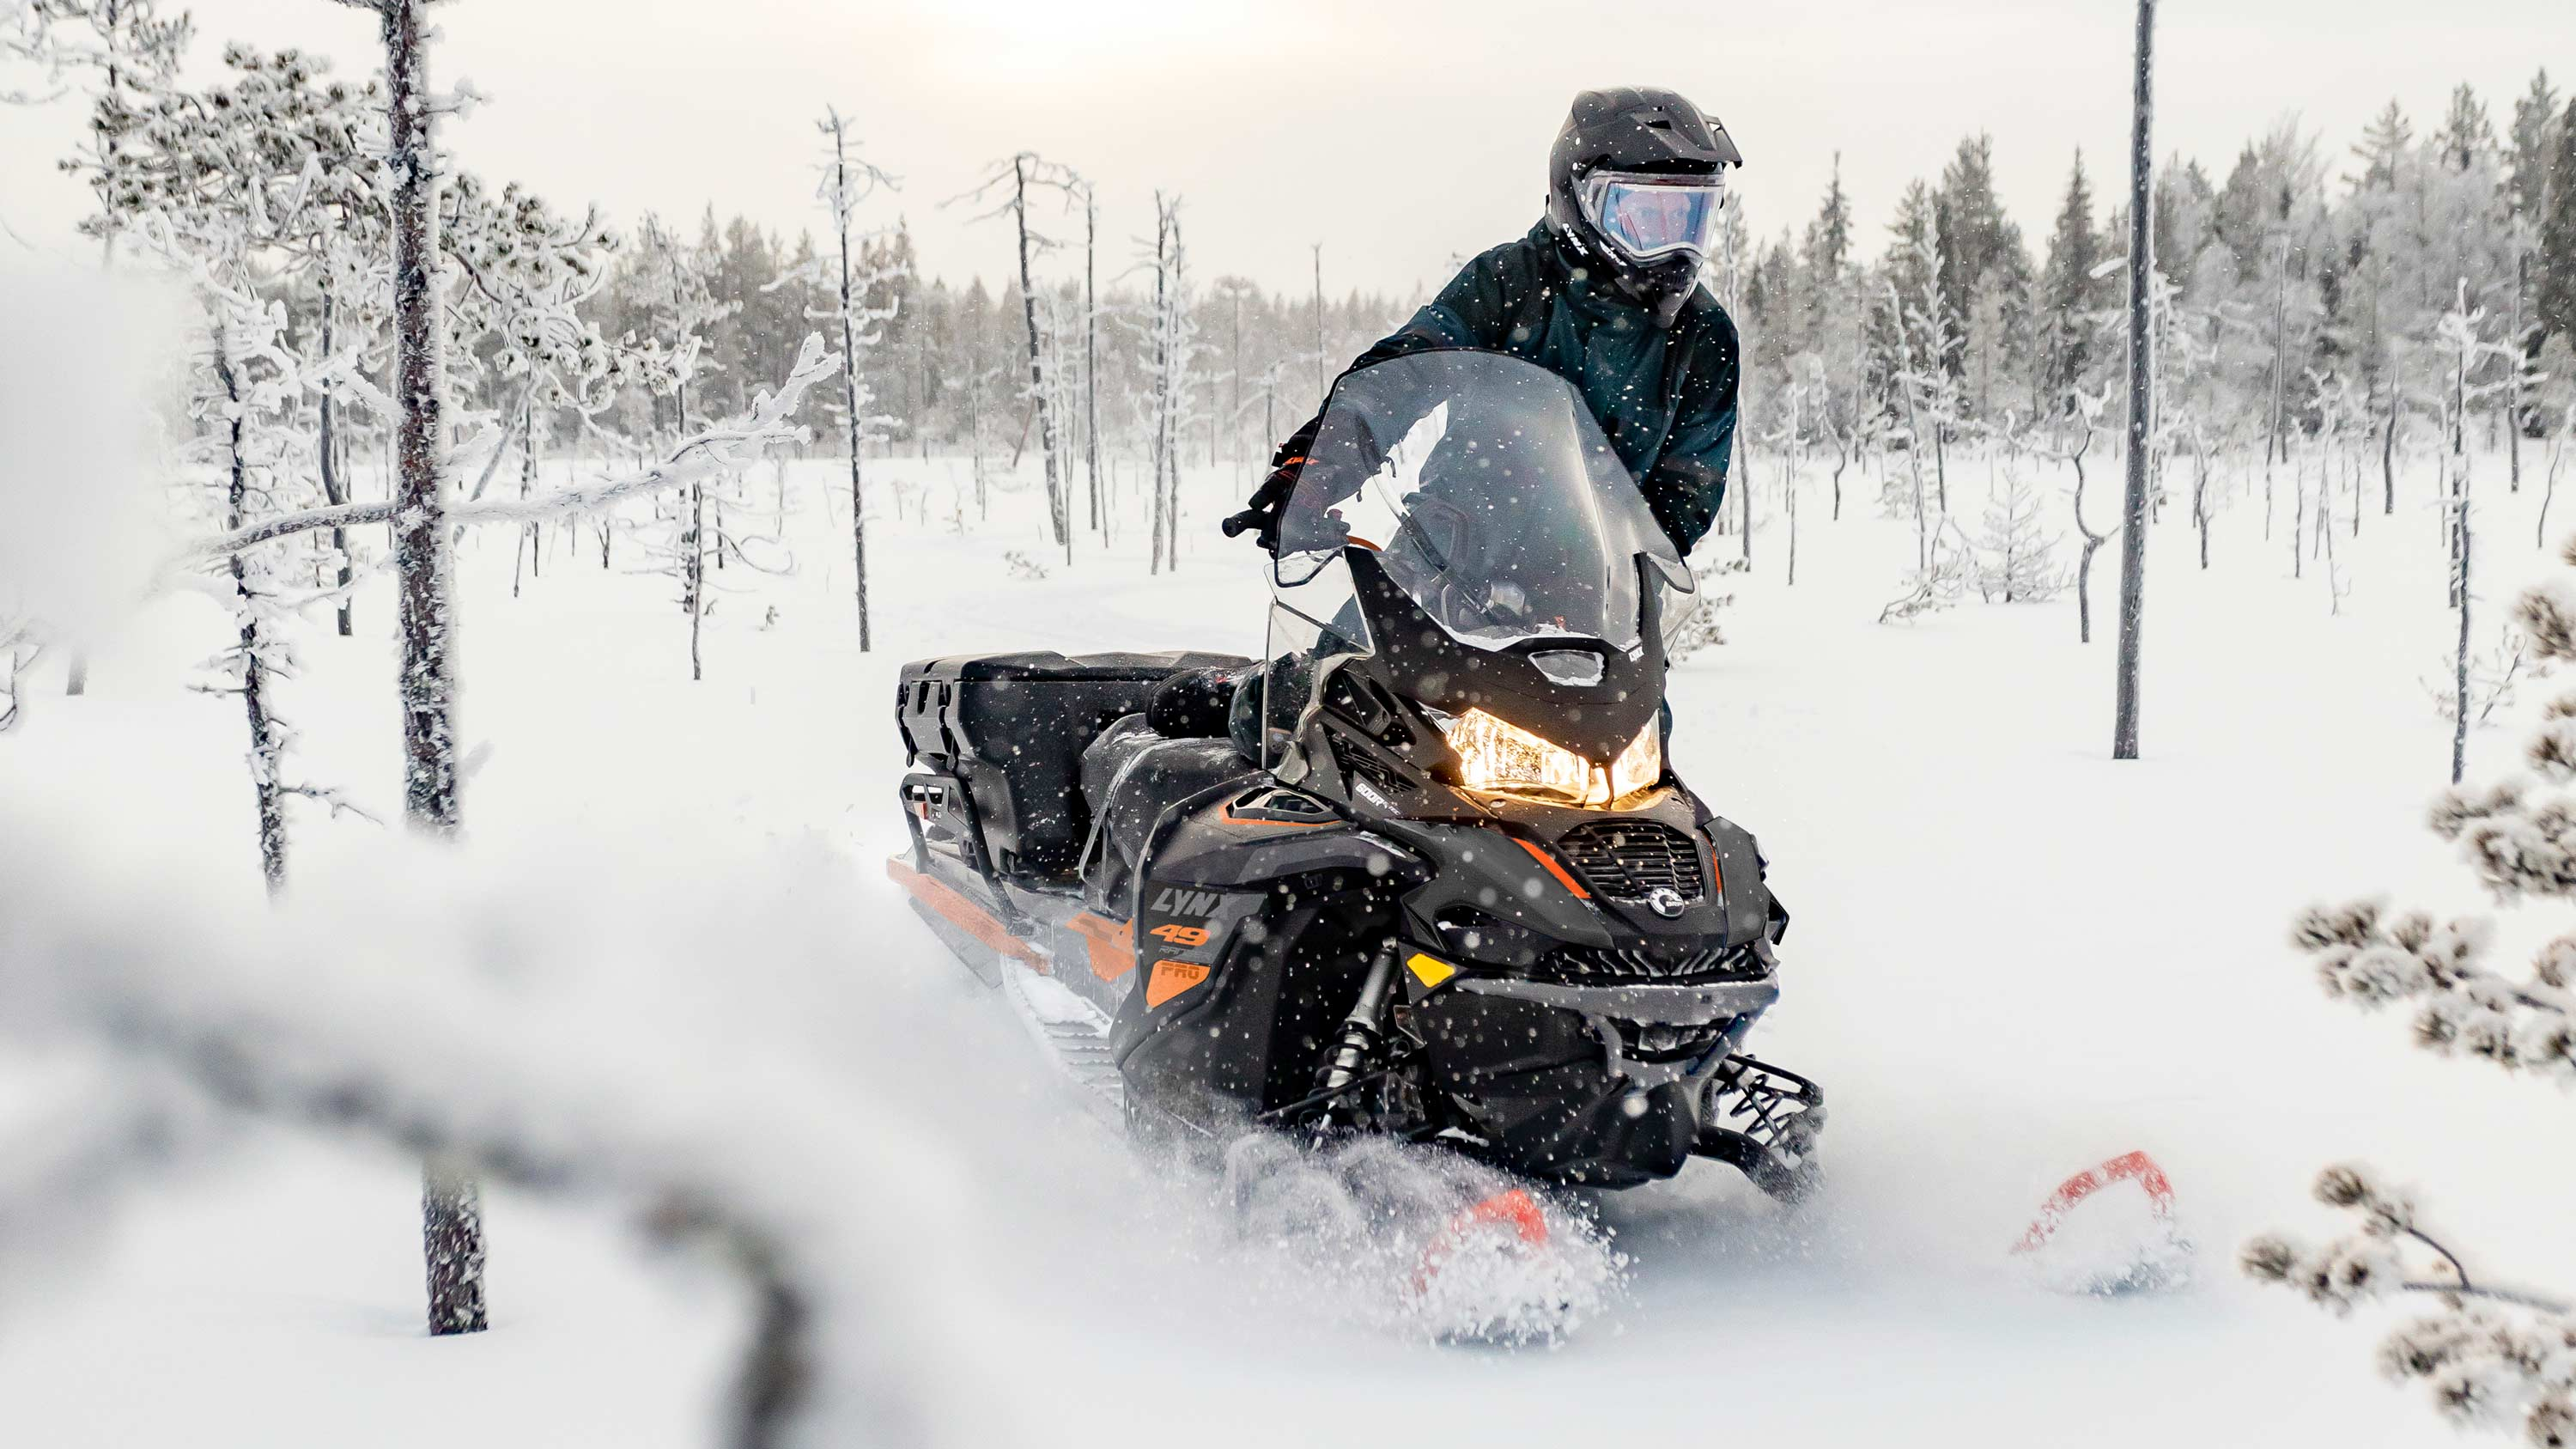 Lynx 49 Ranger snowmobile riding in challenging terrains